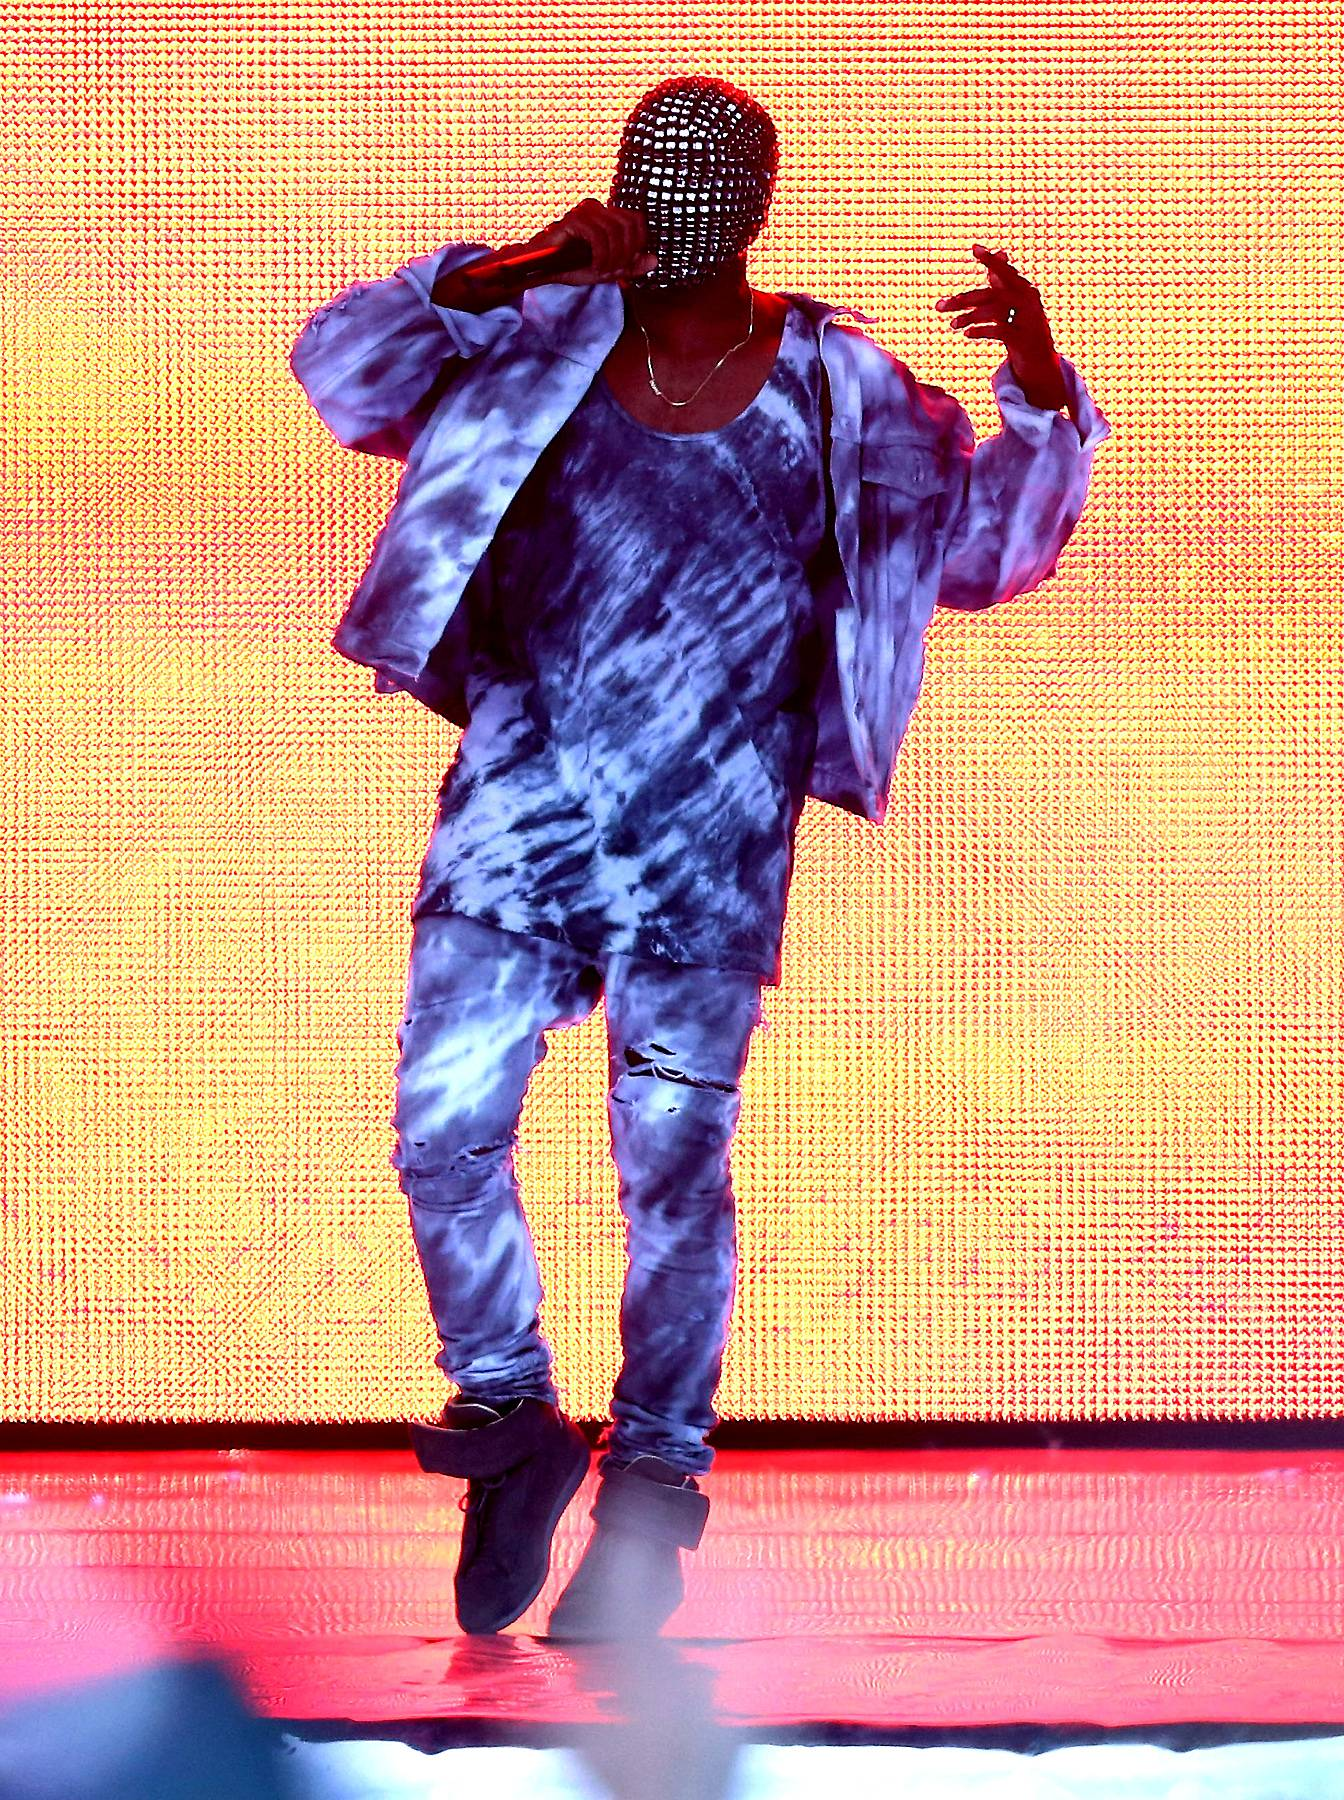 /content/dam/betcom/images/2014/07/Music-07-15-07-31/071614-music-kany-west-performs.jpg